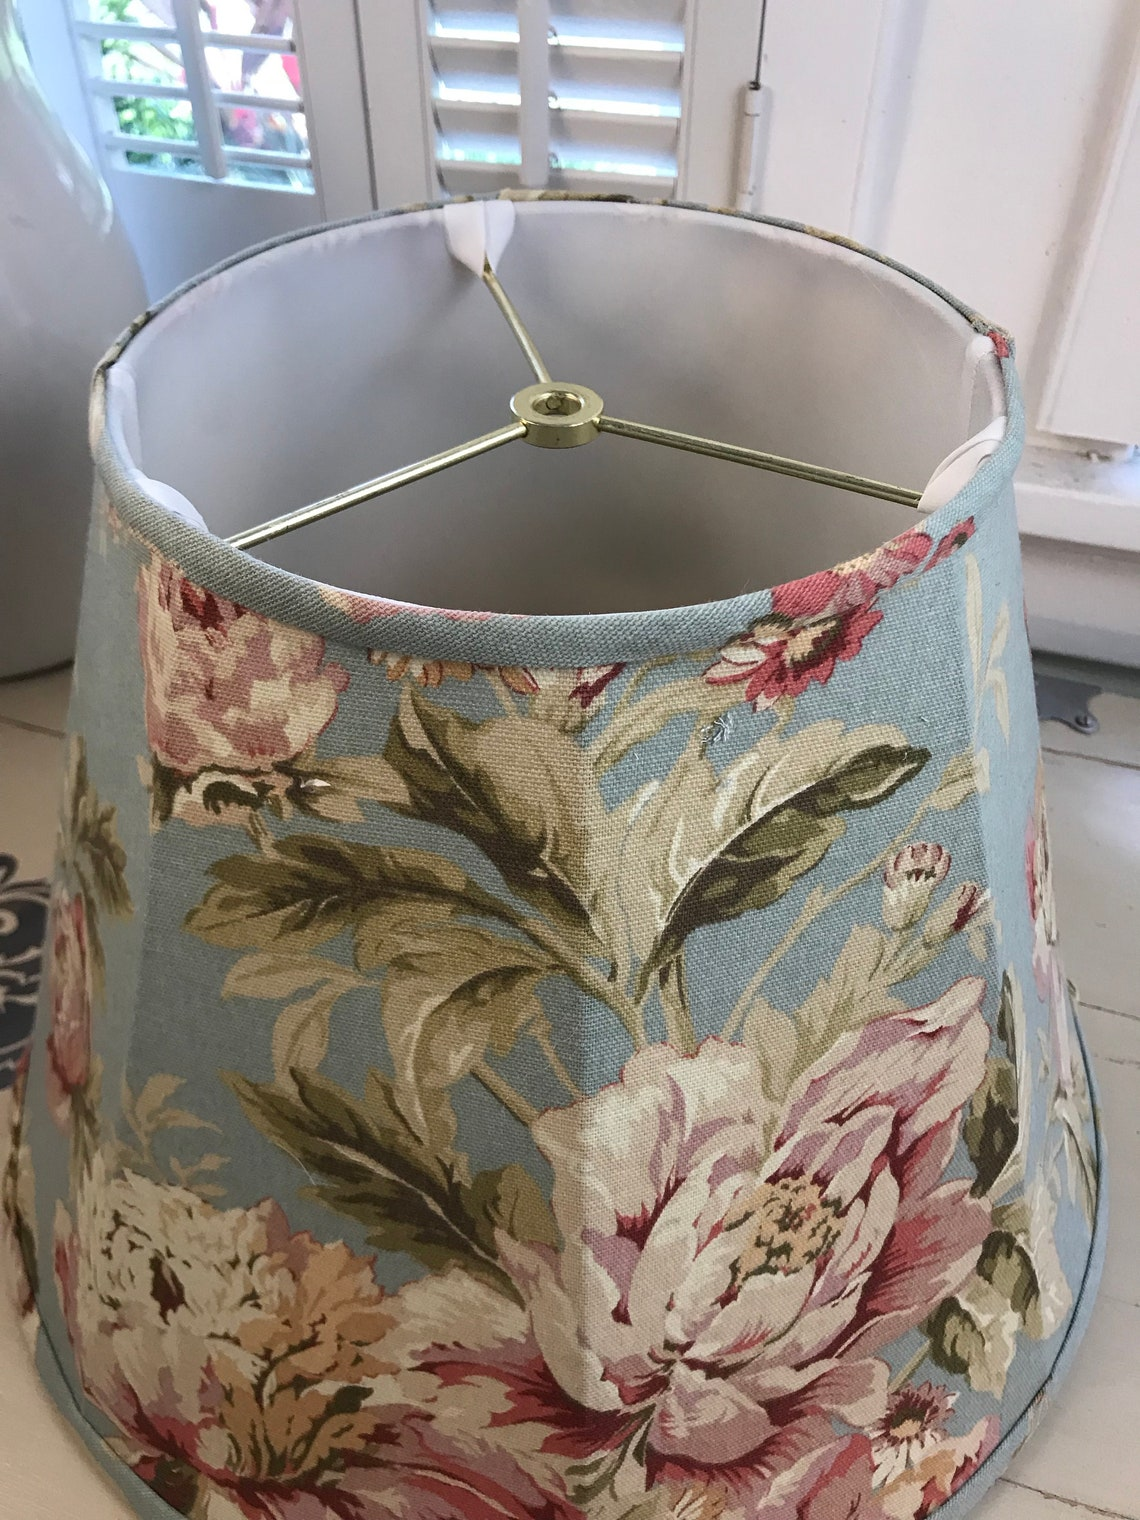 Floral Lamp Shade, Shabby Chic Lamp Shade, Rose Lamp Shade, Cabbage Rose Lamp Shade, FREE SHIPPING - Continental USA - Eclairage